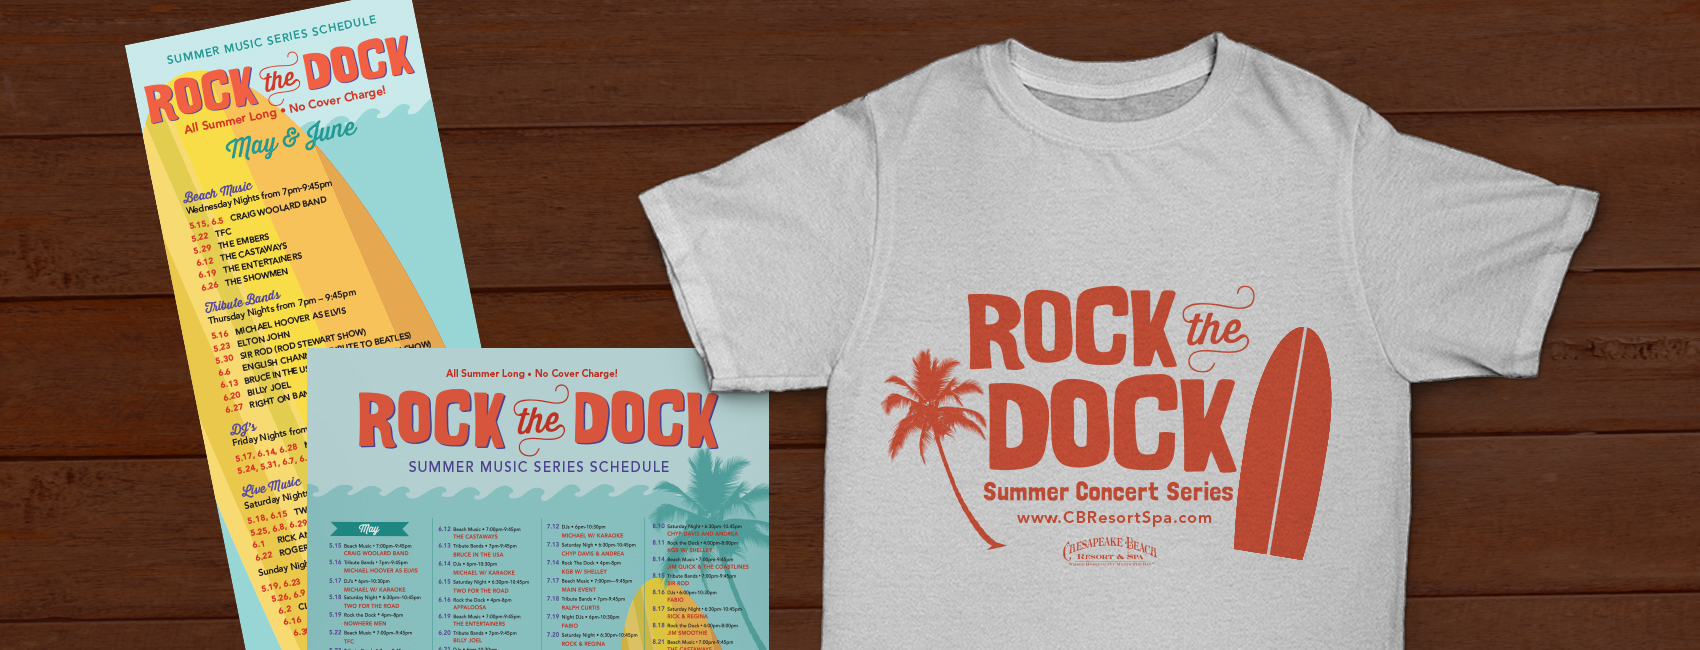 Campaign & Branding for Live Music Series